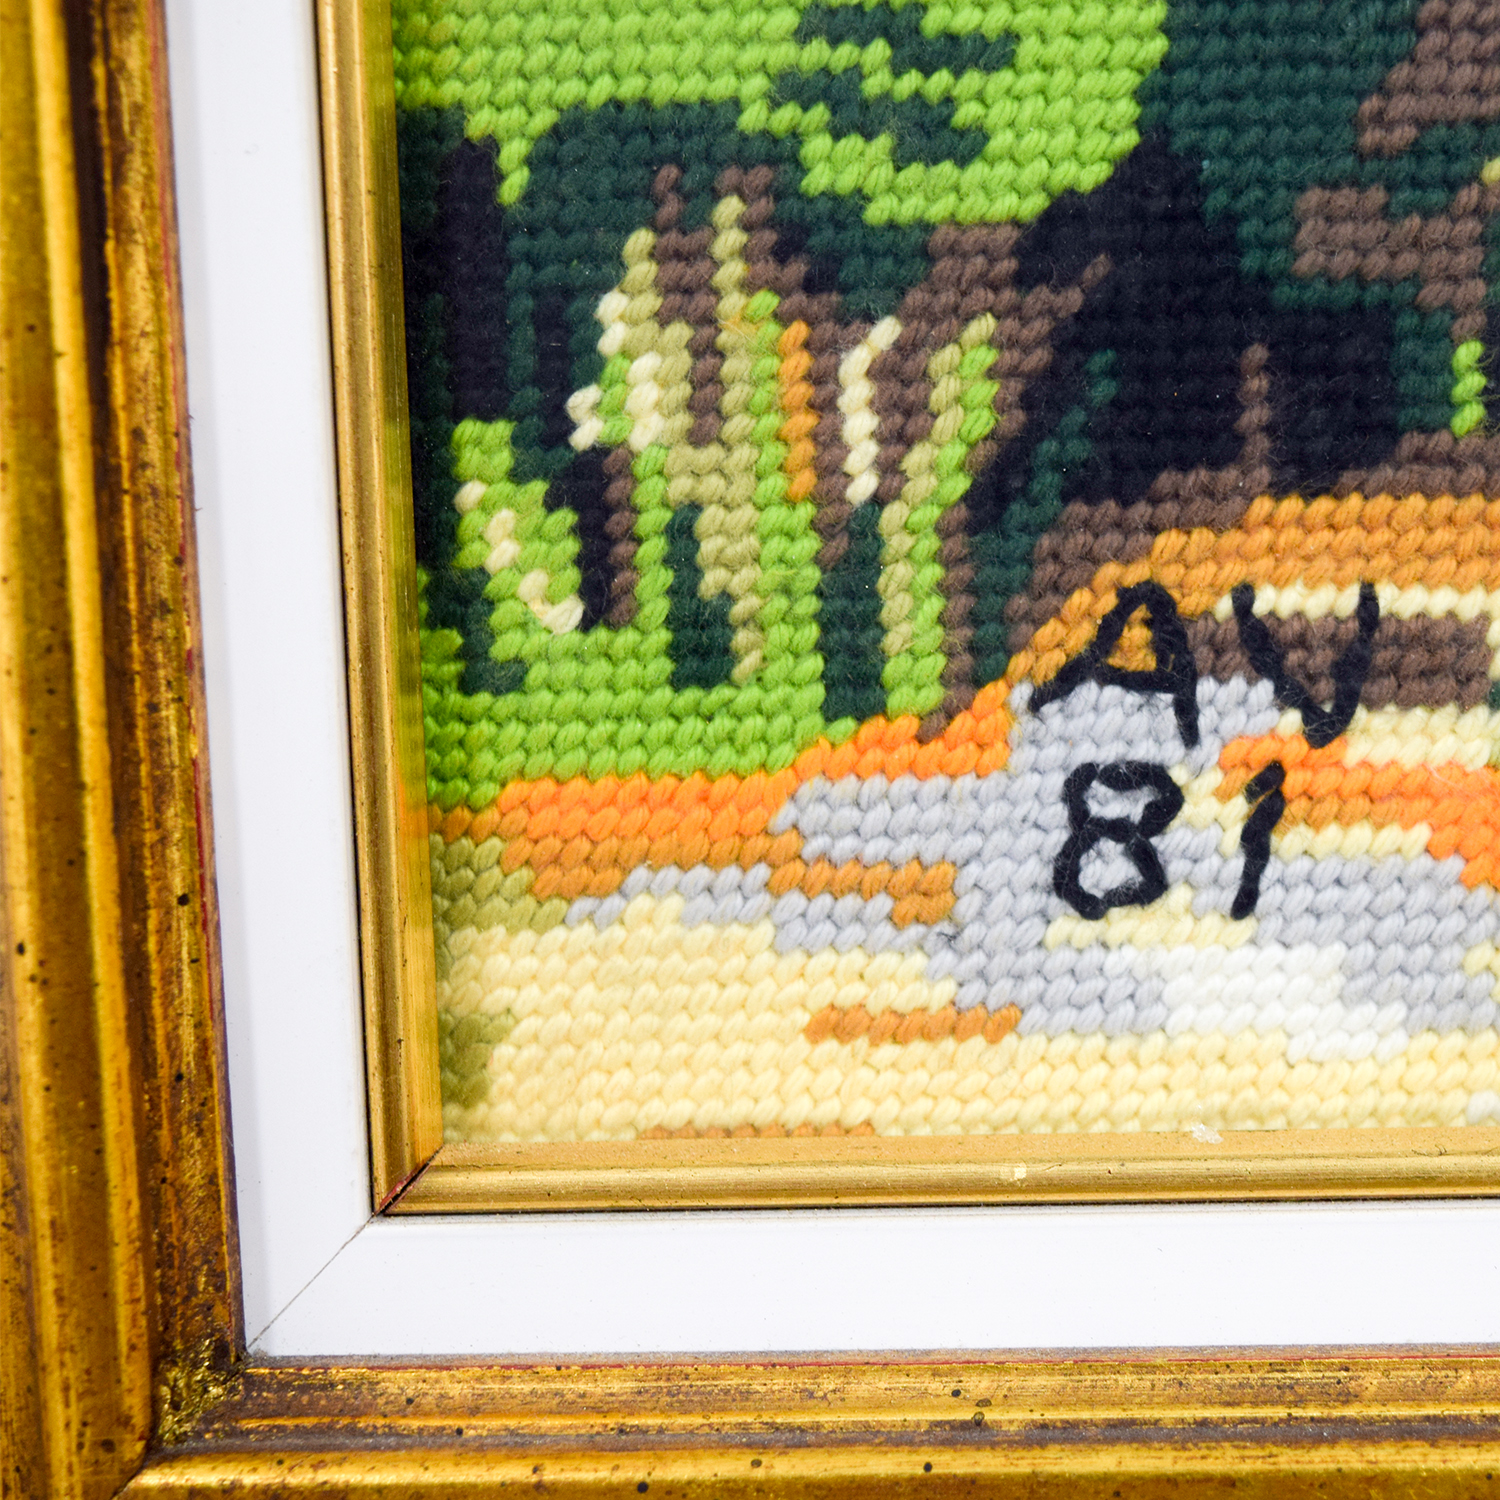 Framed Scenic Cottage Lake Needlepoint sale